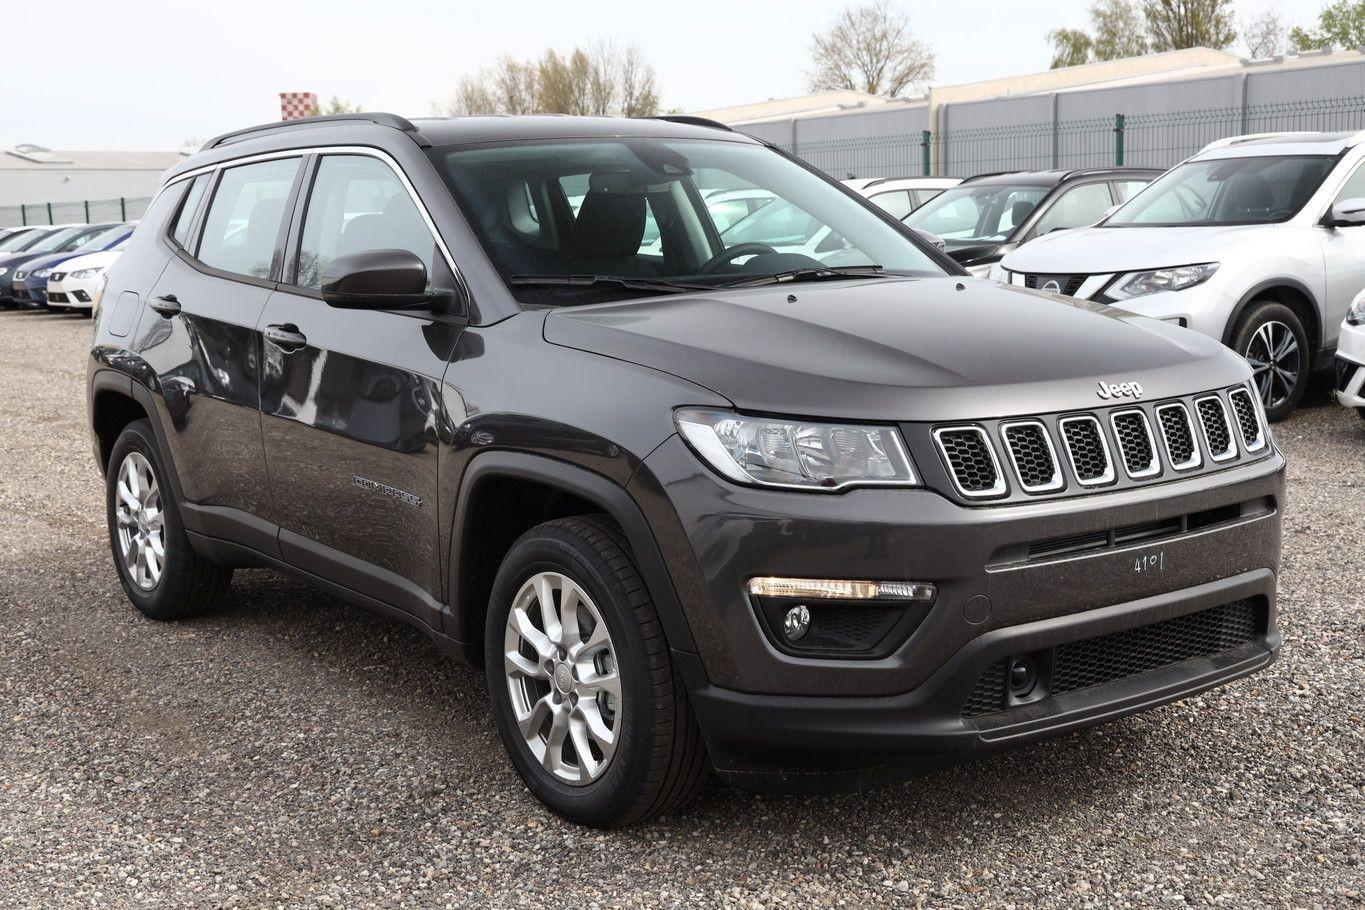 Jeep Compass 1.3 GSE 150 DCT Longit Keyl SHZ PDC - Leasing ohne Anzahlung - 368849_02